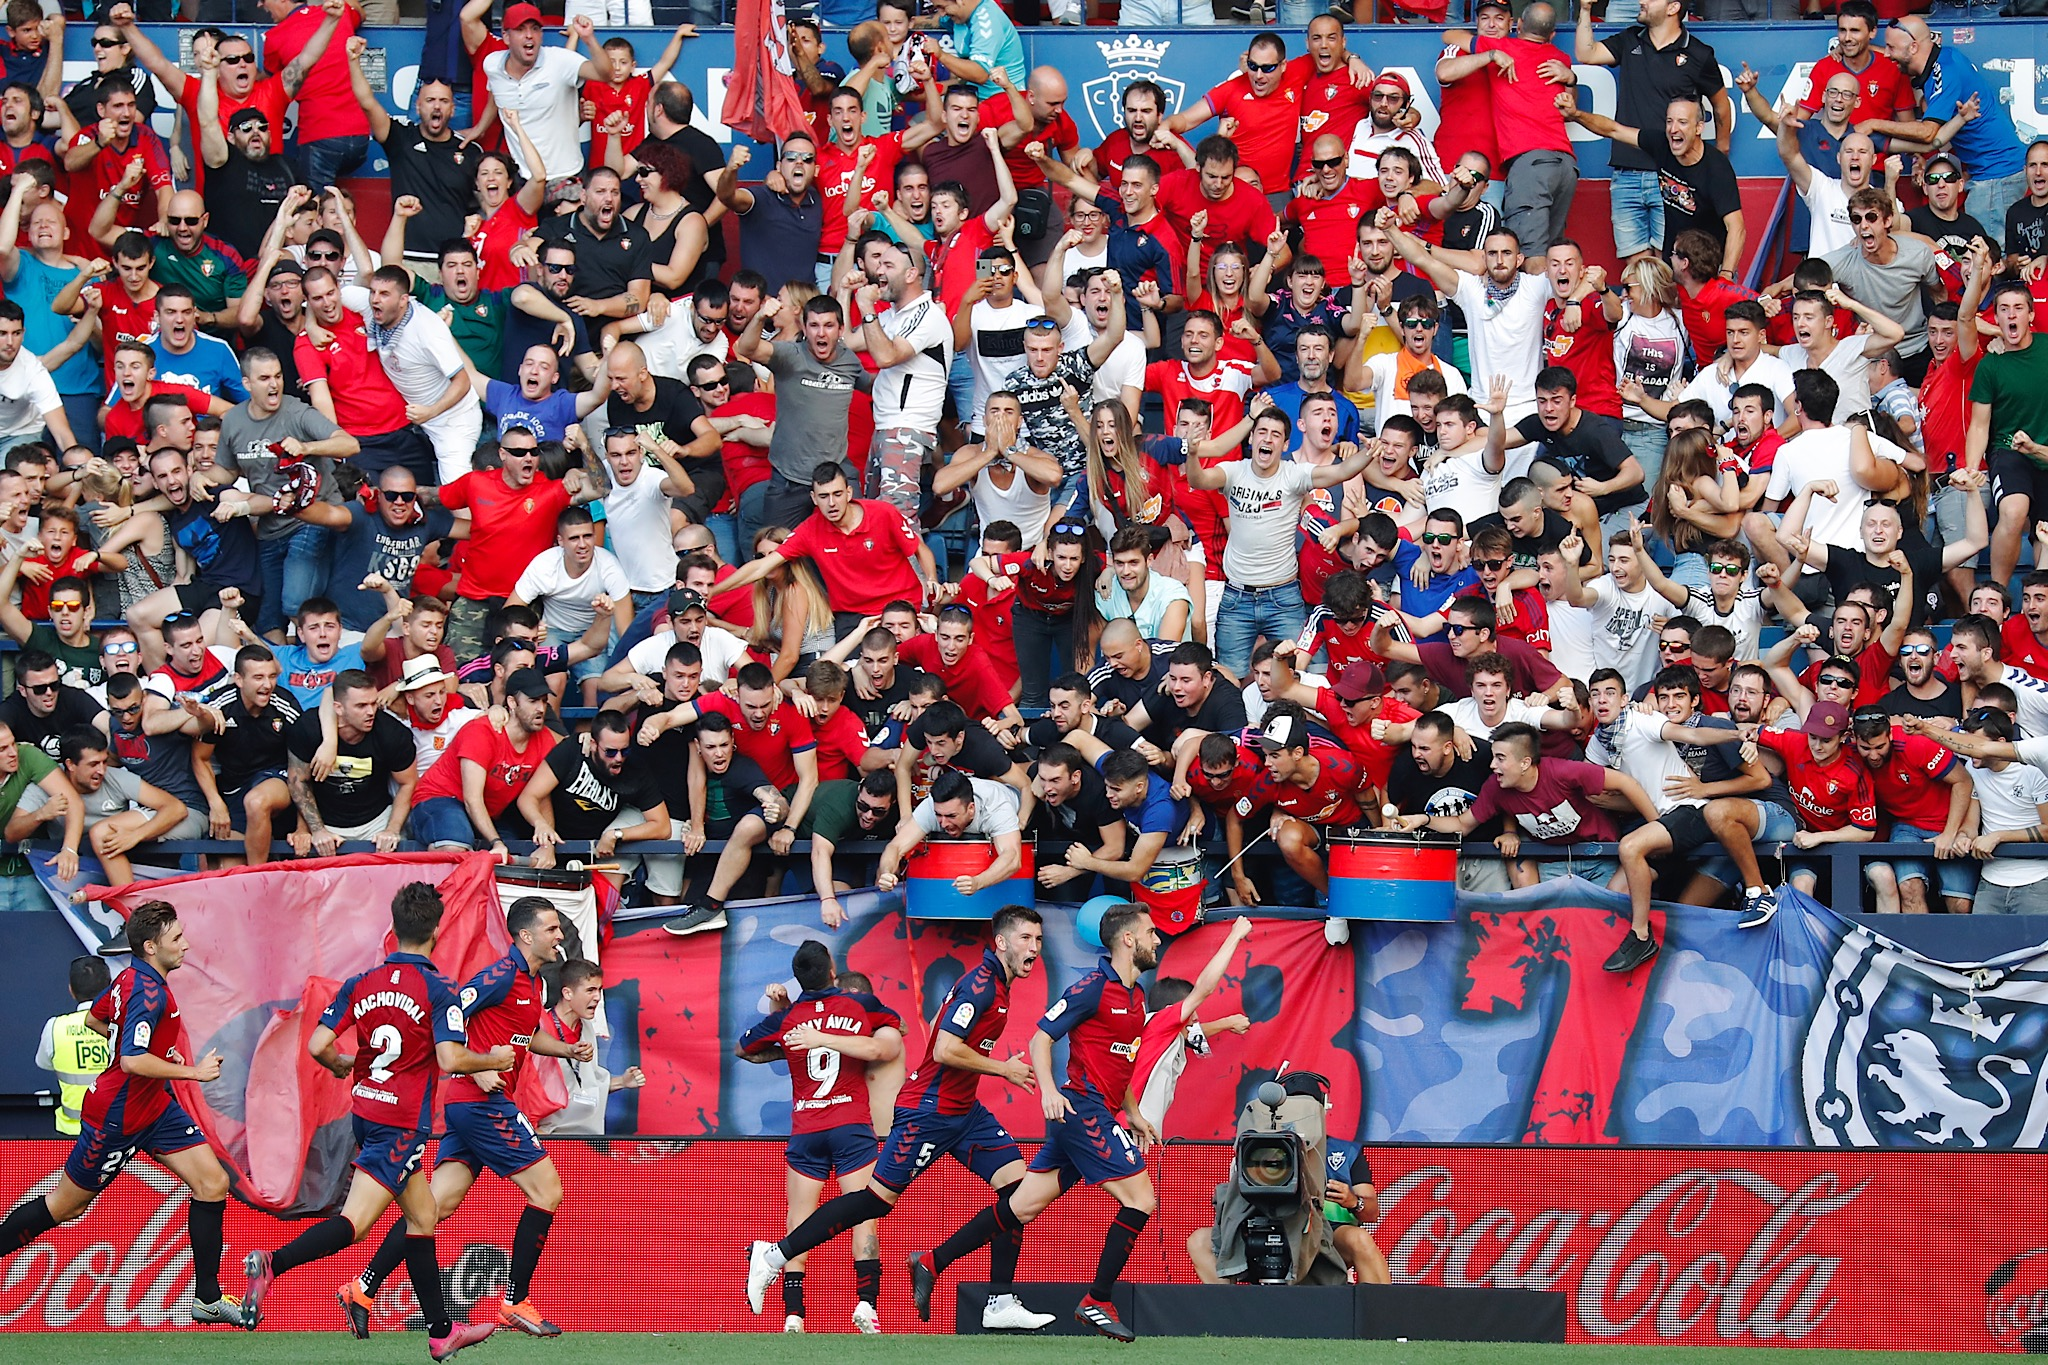 El Sadar, the home of CA Osasuna and the loudest crowd in LaLiga history